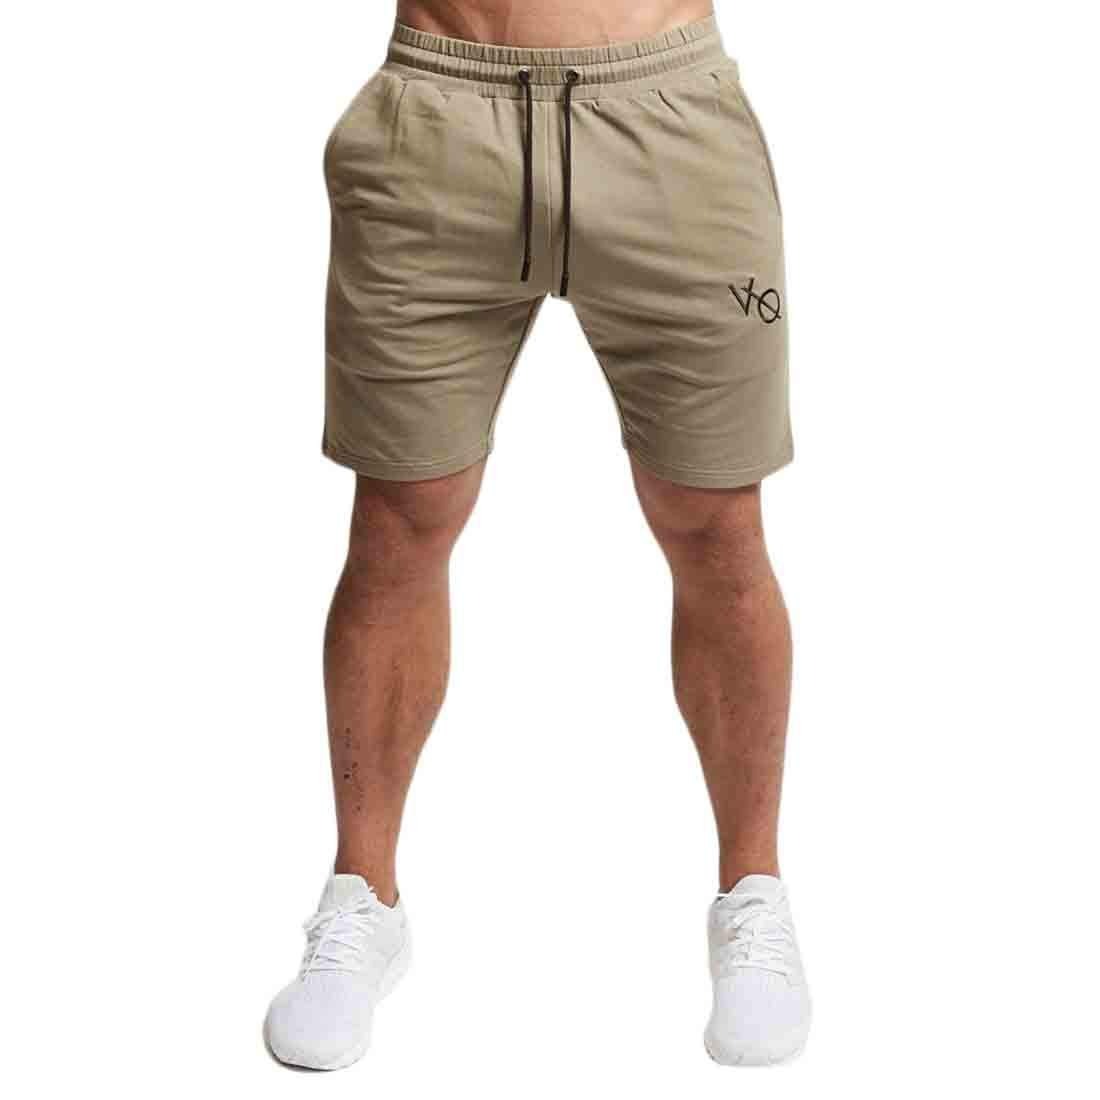 JXG Men Summer Elastic Waist Drawstring Casual Sport Running Trainning Beach Shorts Boardshort Swim Trunk